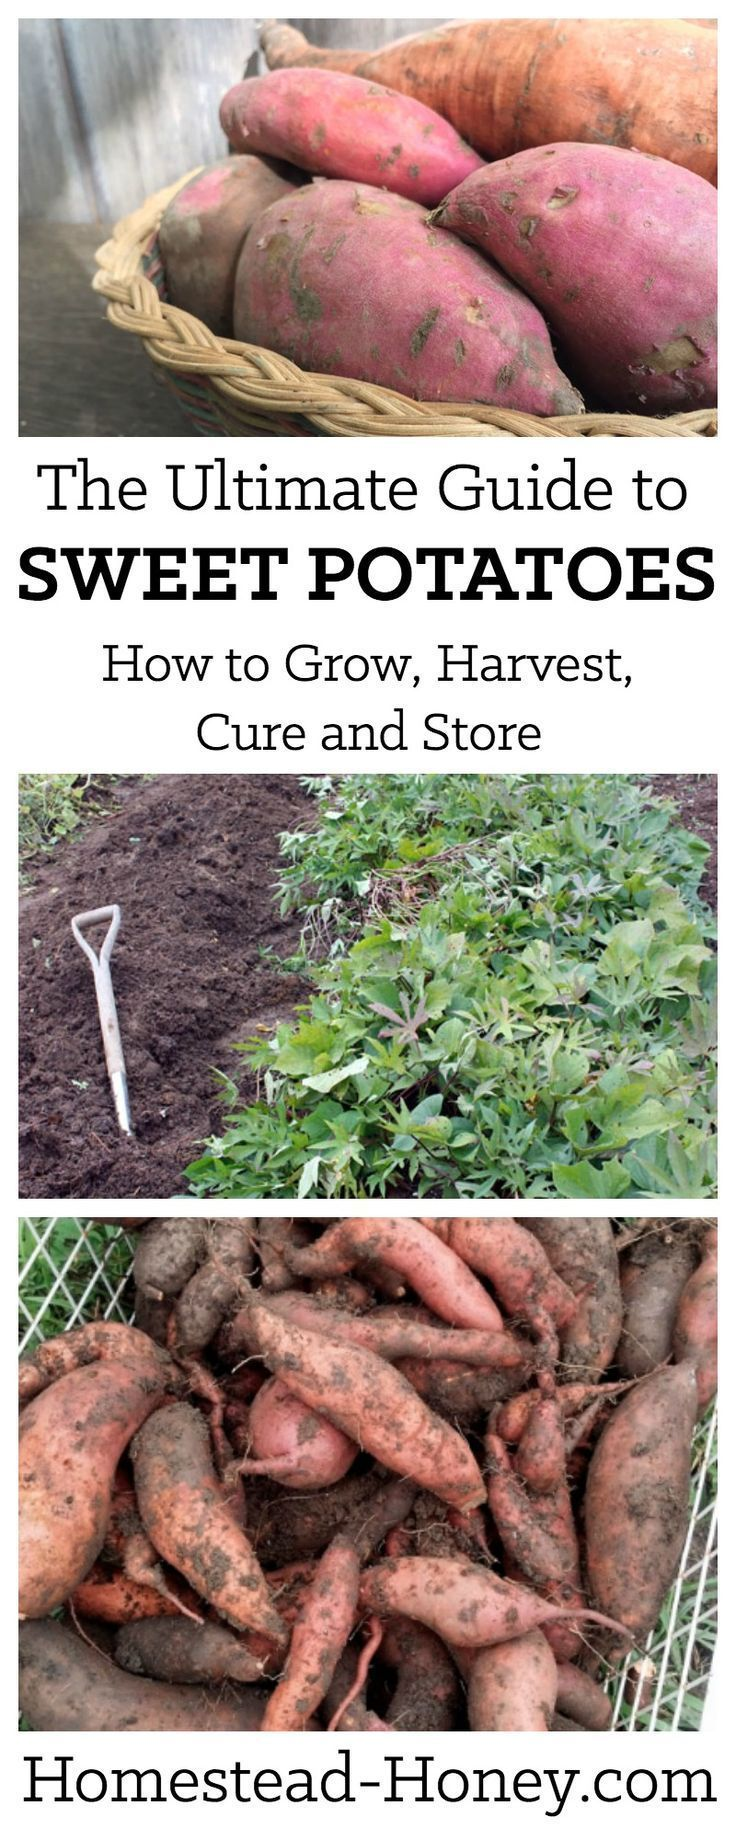 How To Grow Harvest Cure And Store Sweet Potatoes Homesteads Cure And Honey